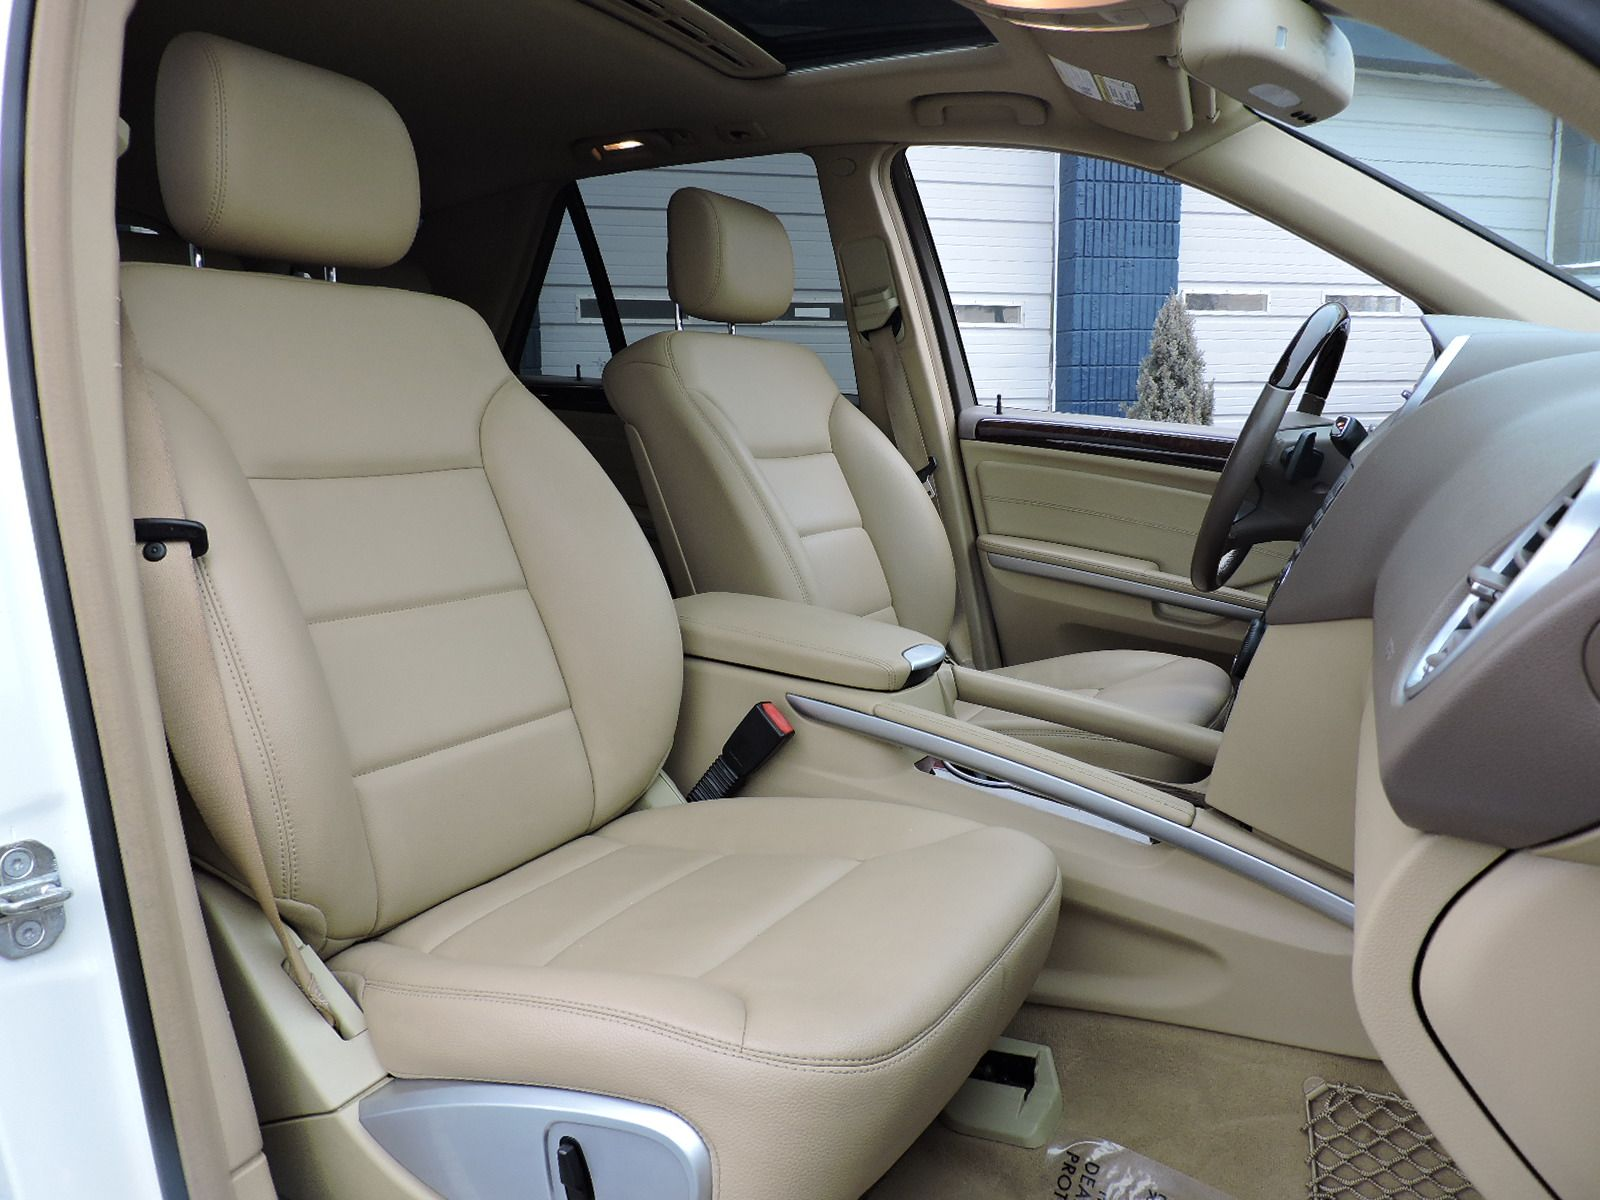 autocheck miles model class make for sale vehicle s benz suv arrived year m this score mercedes body style